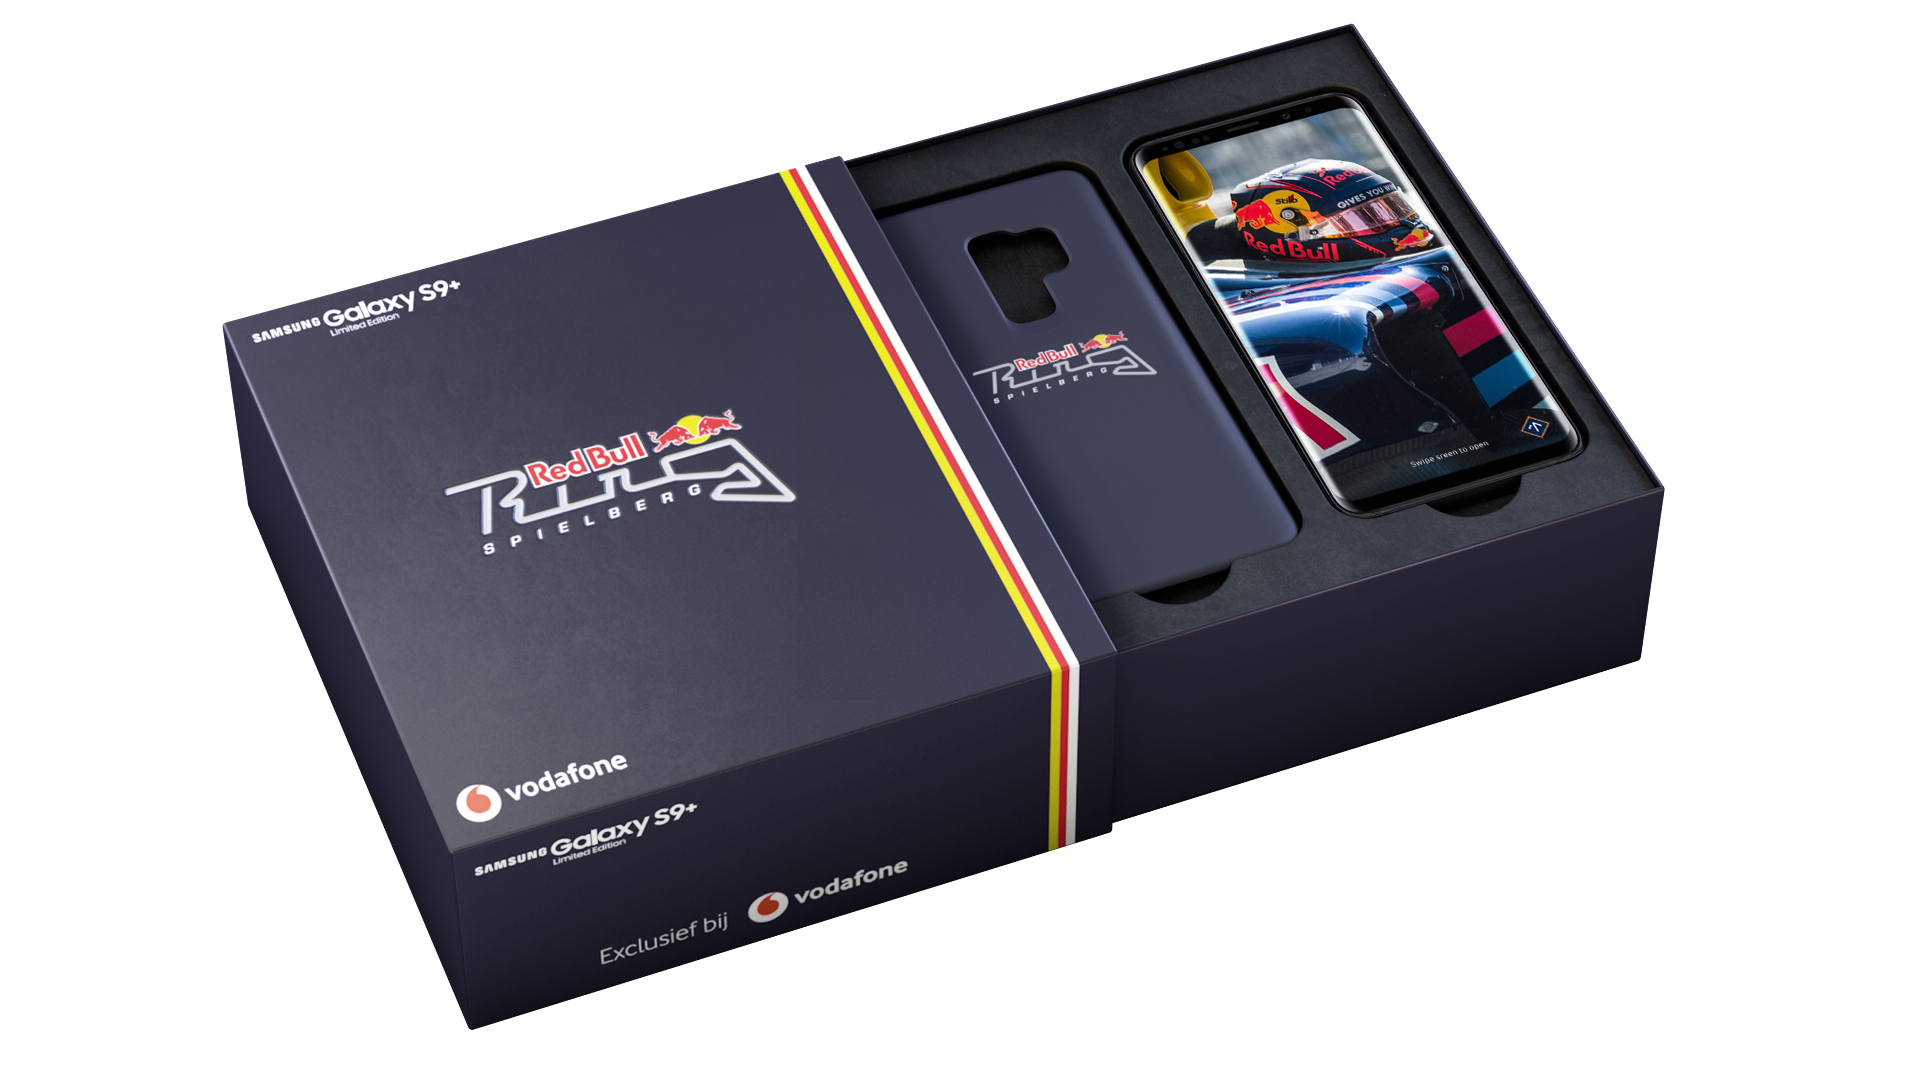 Samsung And Vodafone Launch Red Bull Ring Pack Limited Edition